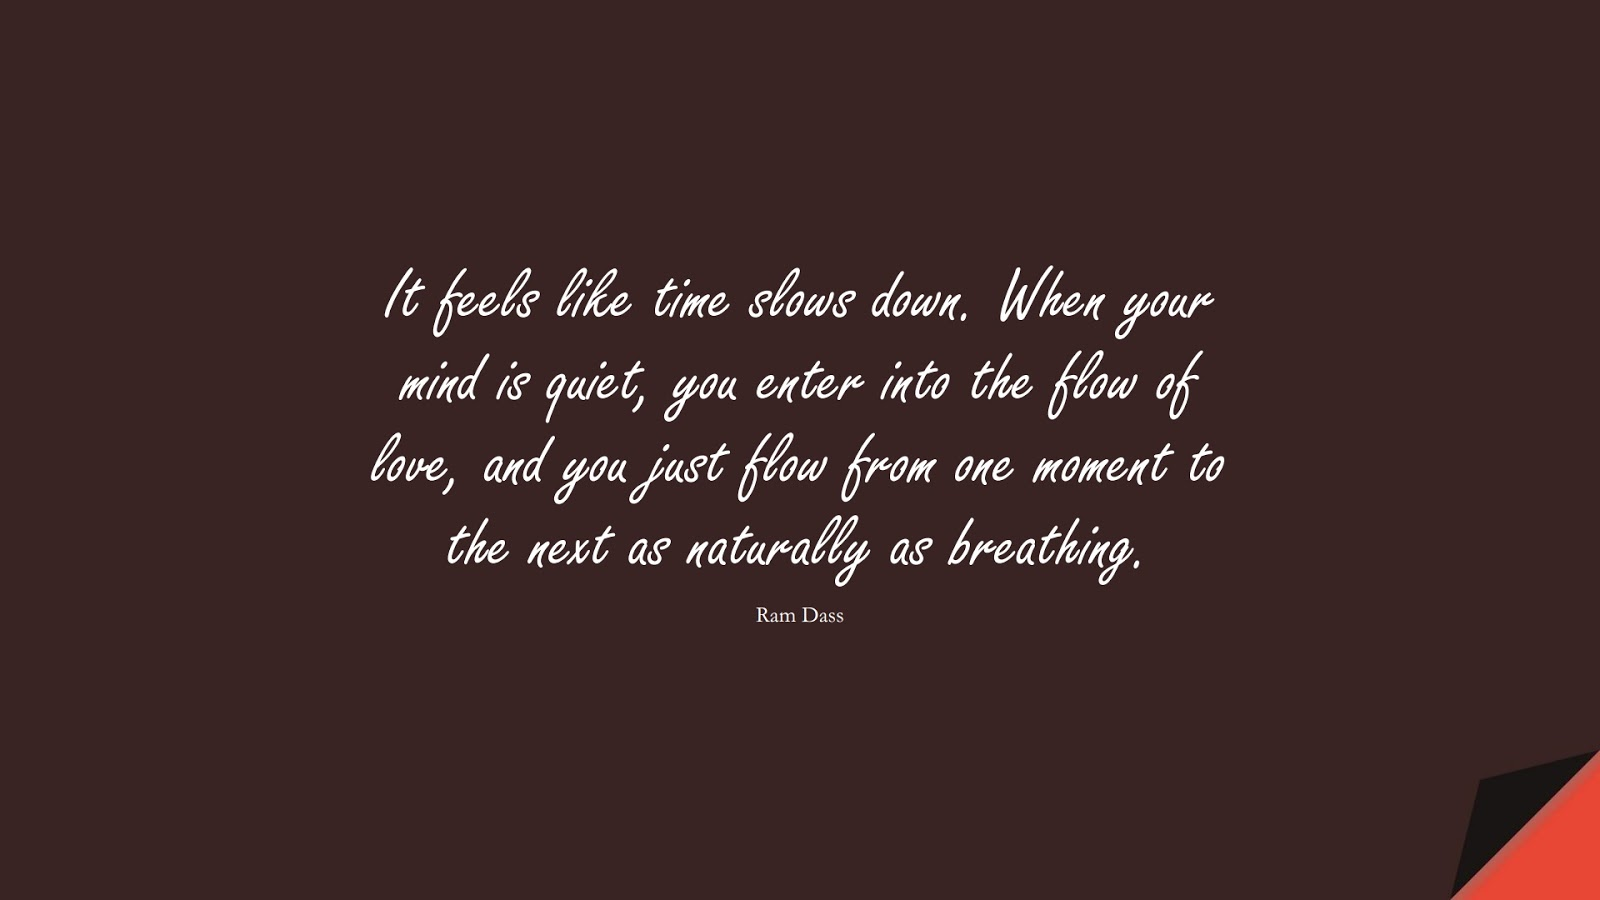 It feels like time slows down. When your mind is quiet, you enter into the flow of love, and you just flow from one moment to the next as naturally as breathing. (Ram Dass);  #CalmQuotes